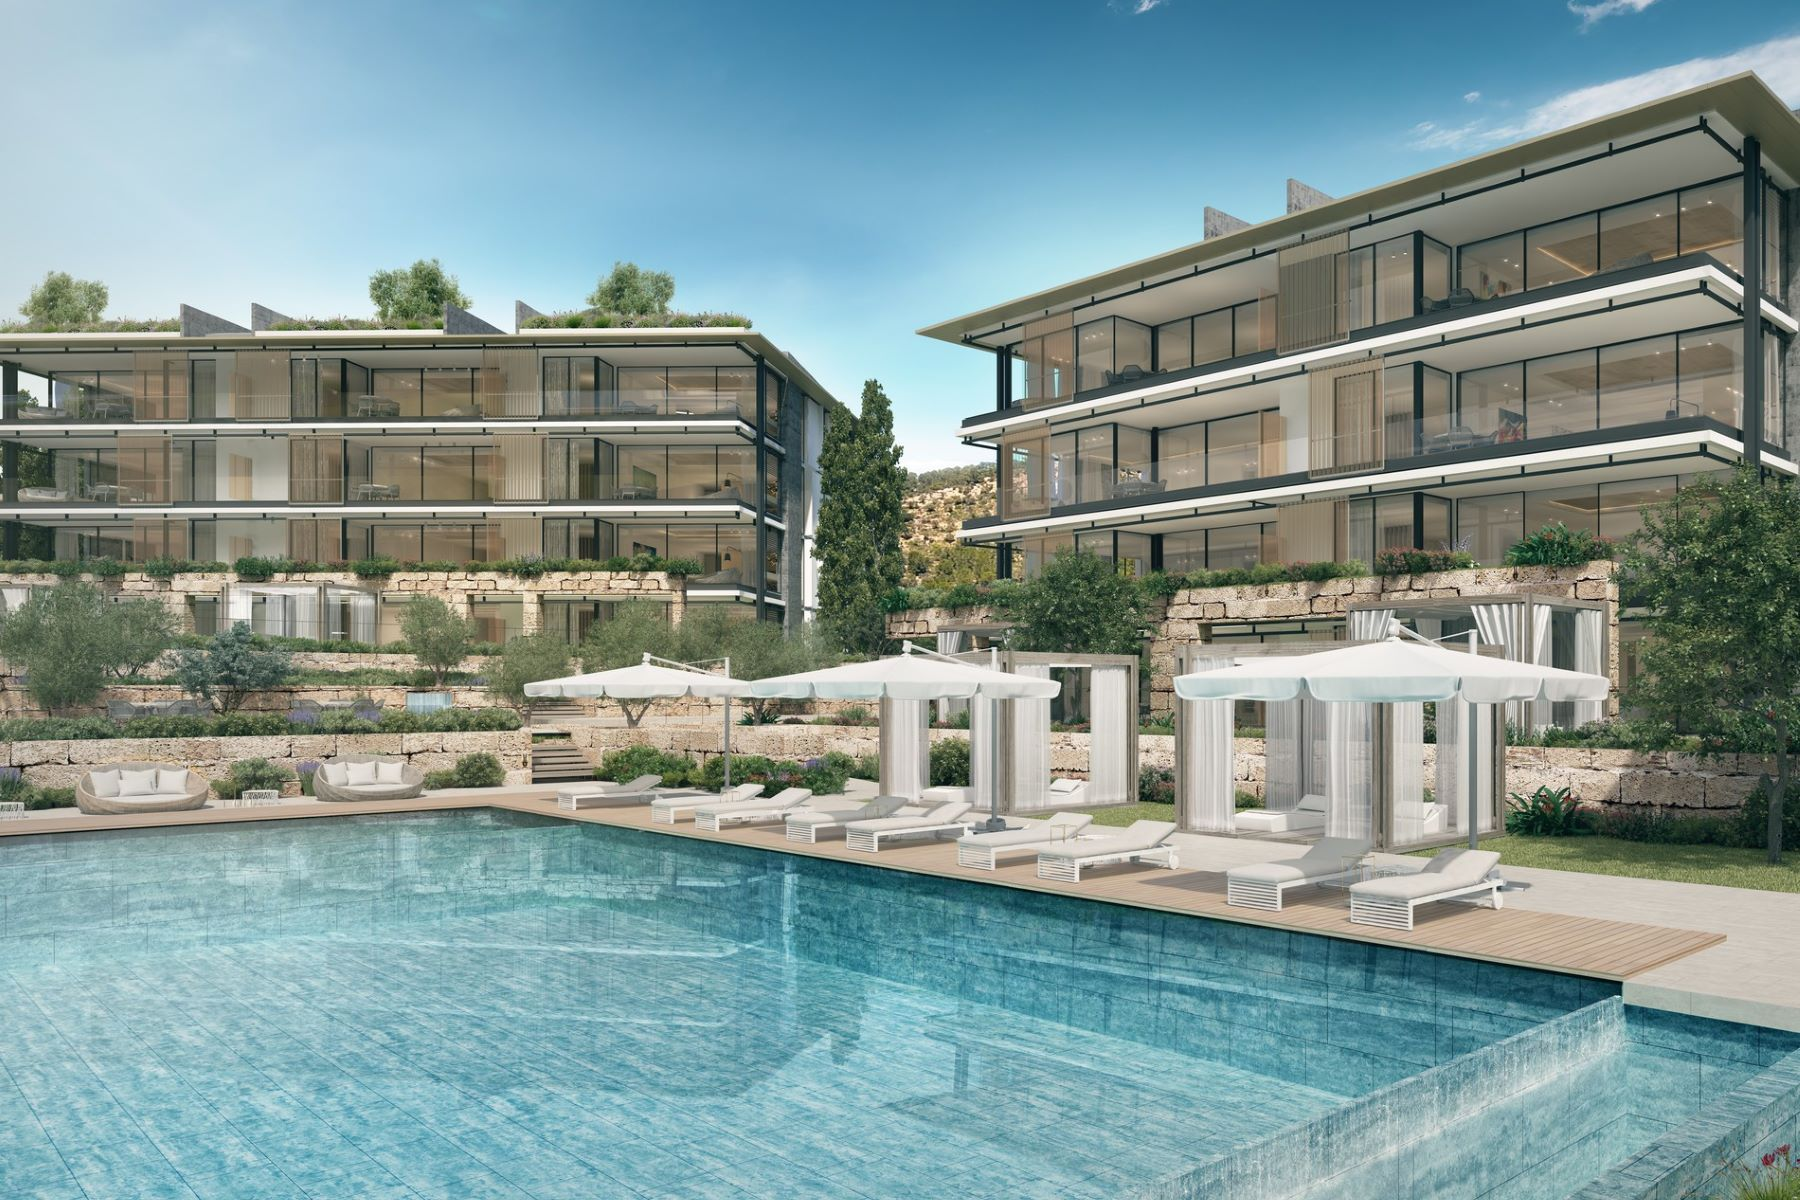 Single Family Home for Sale at New penthouses with swimming pools luxury resort Other Balearic Islands, Balearic Islands, Spain